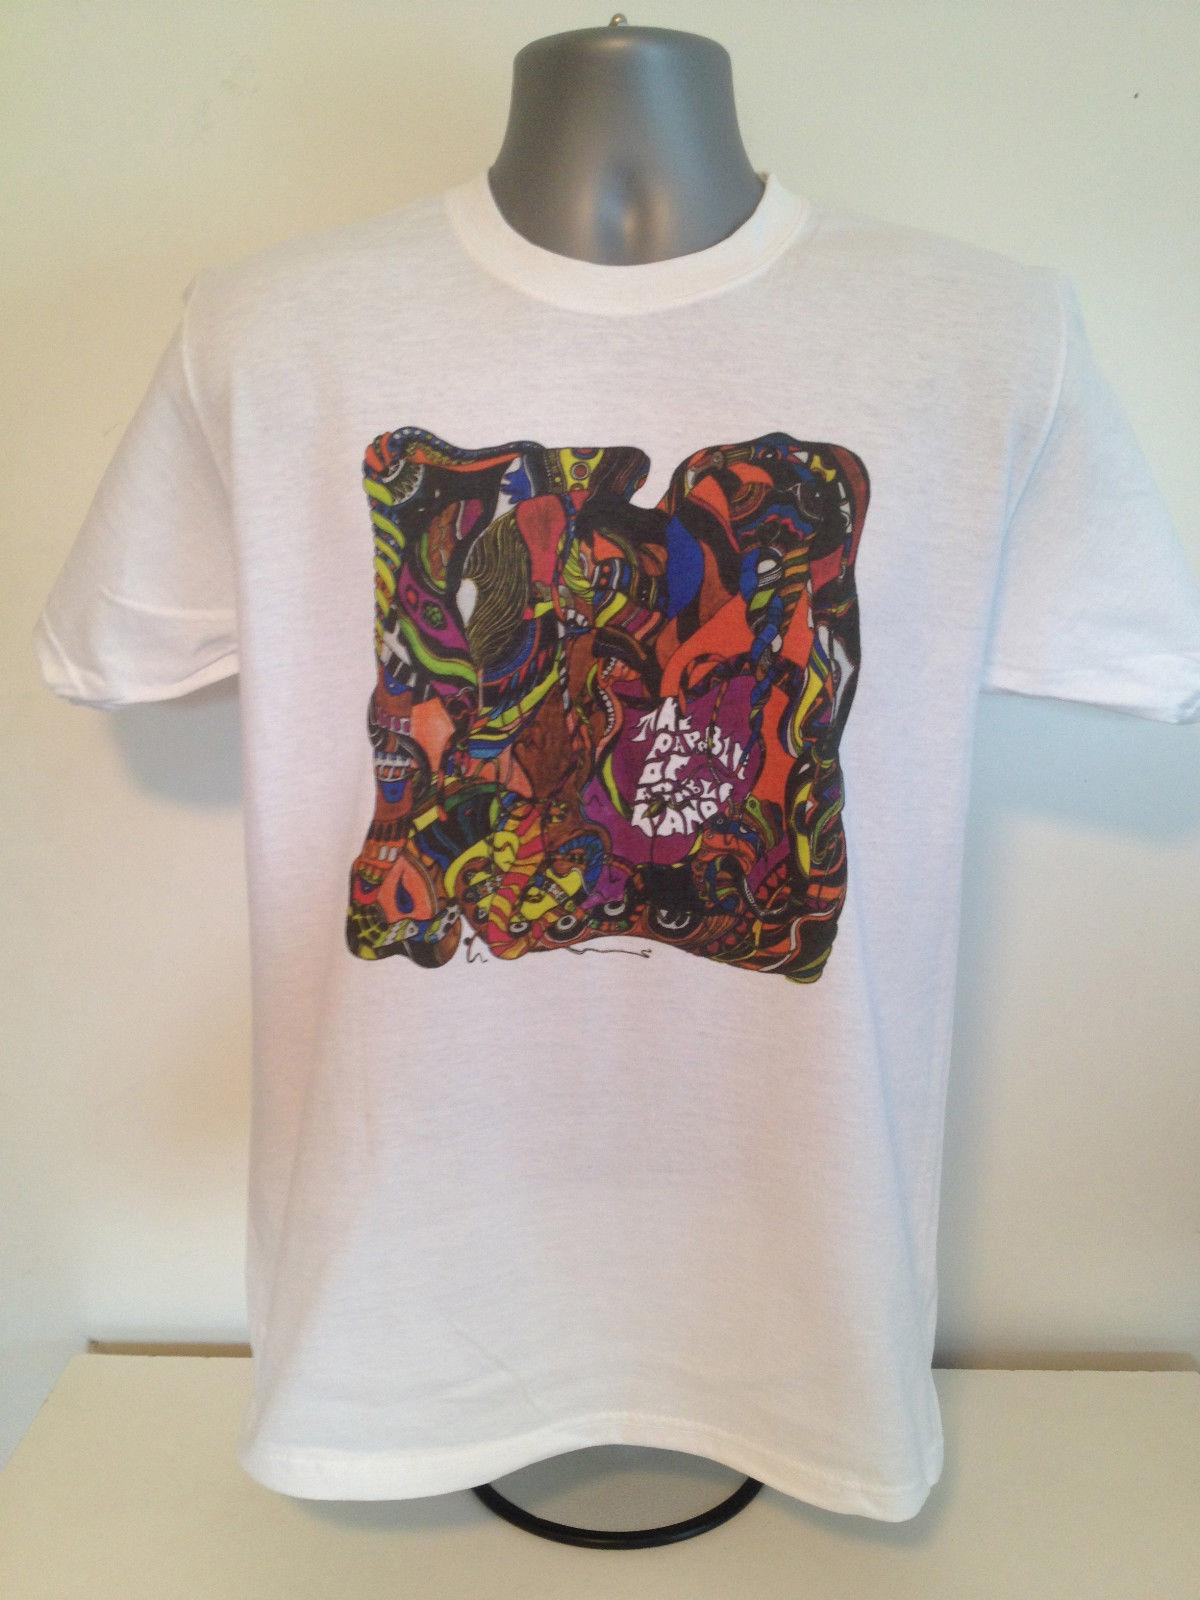 T-SHIRT ROSSO KRAYOLA - Red Crayola, Psychedlia, Parable Arable Land